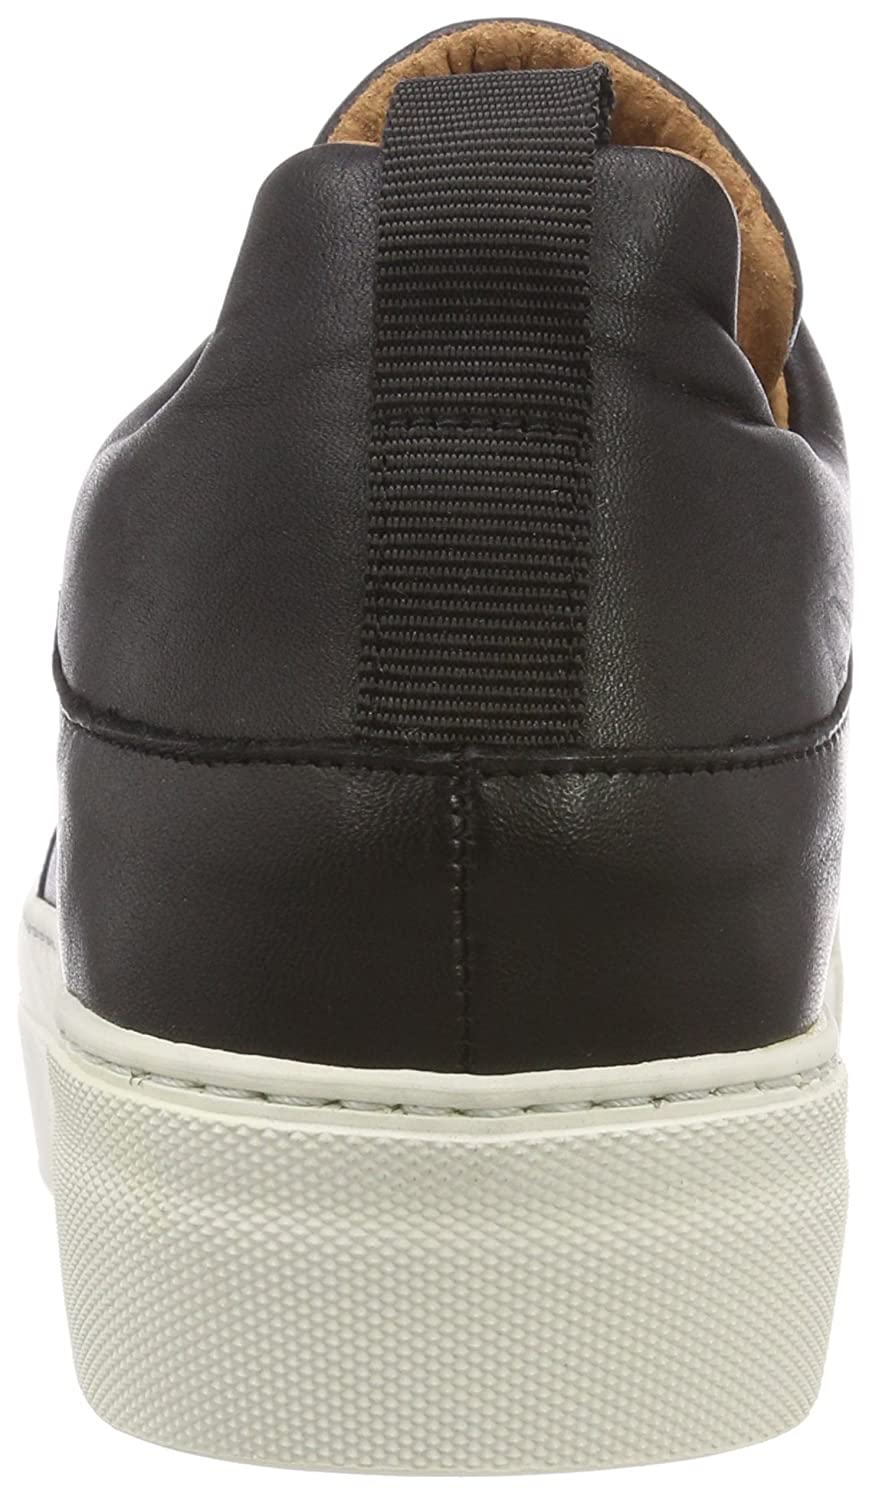 a8623ff0d633 Selected Women rsquo s Slfann Slfann Slfann Leather Slipon B Low-Top ...